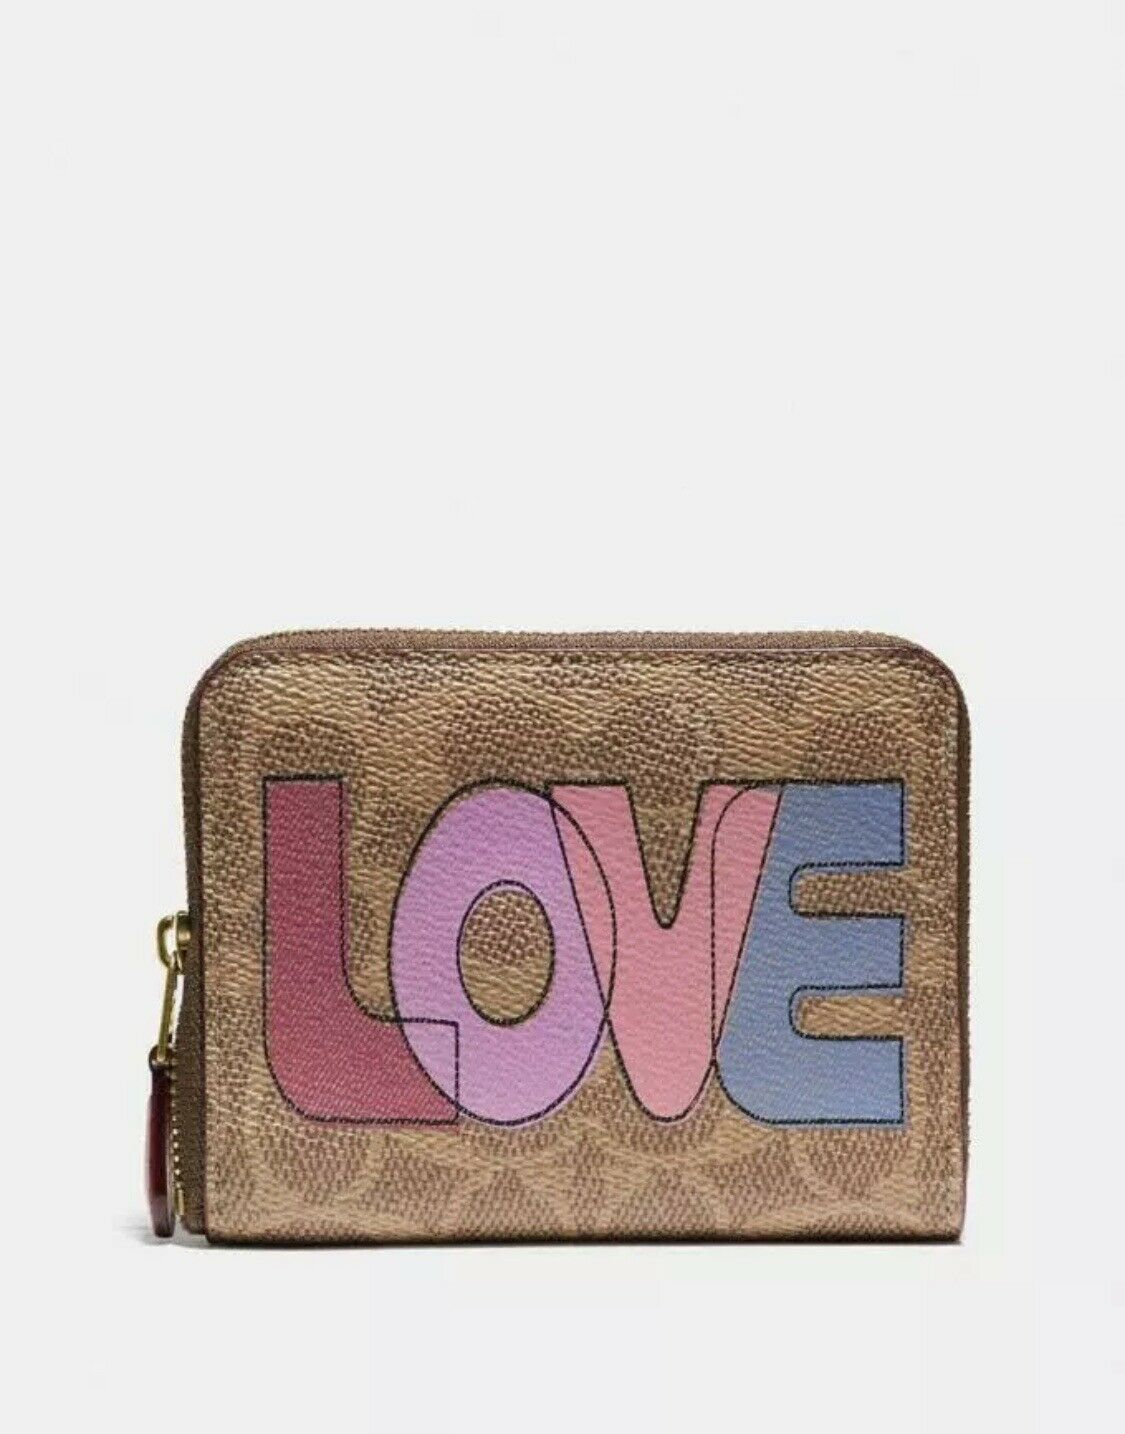 NWT Coach Small Zip Around Wallet In Signature Canvas With LOVE Print Detail NEW